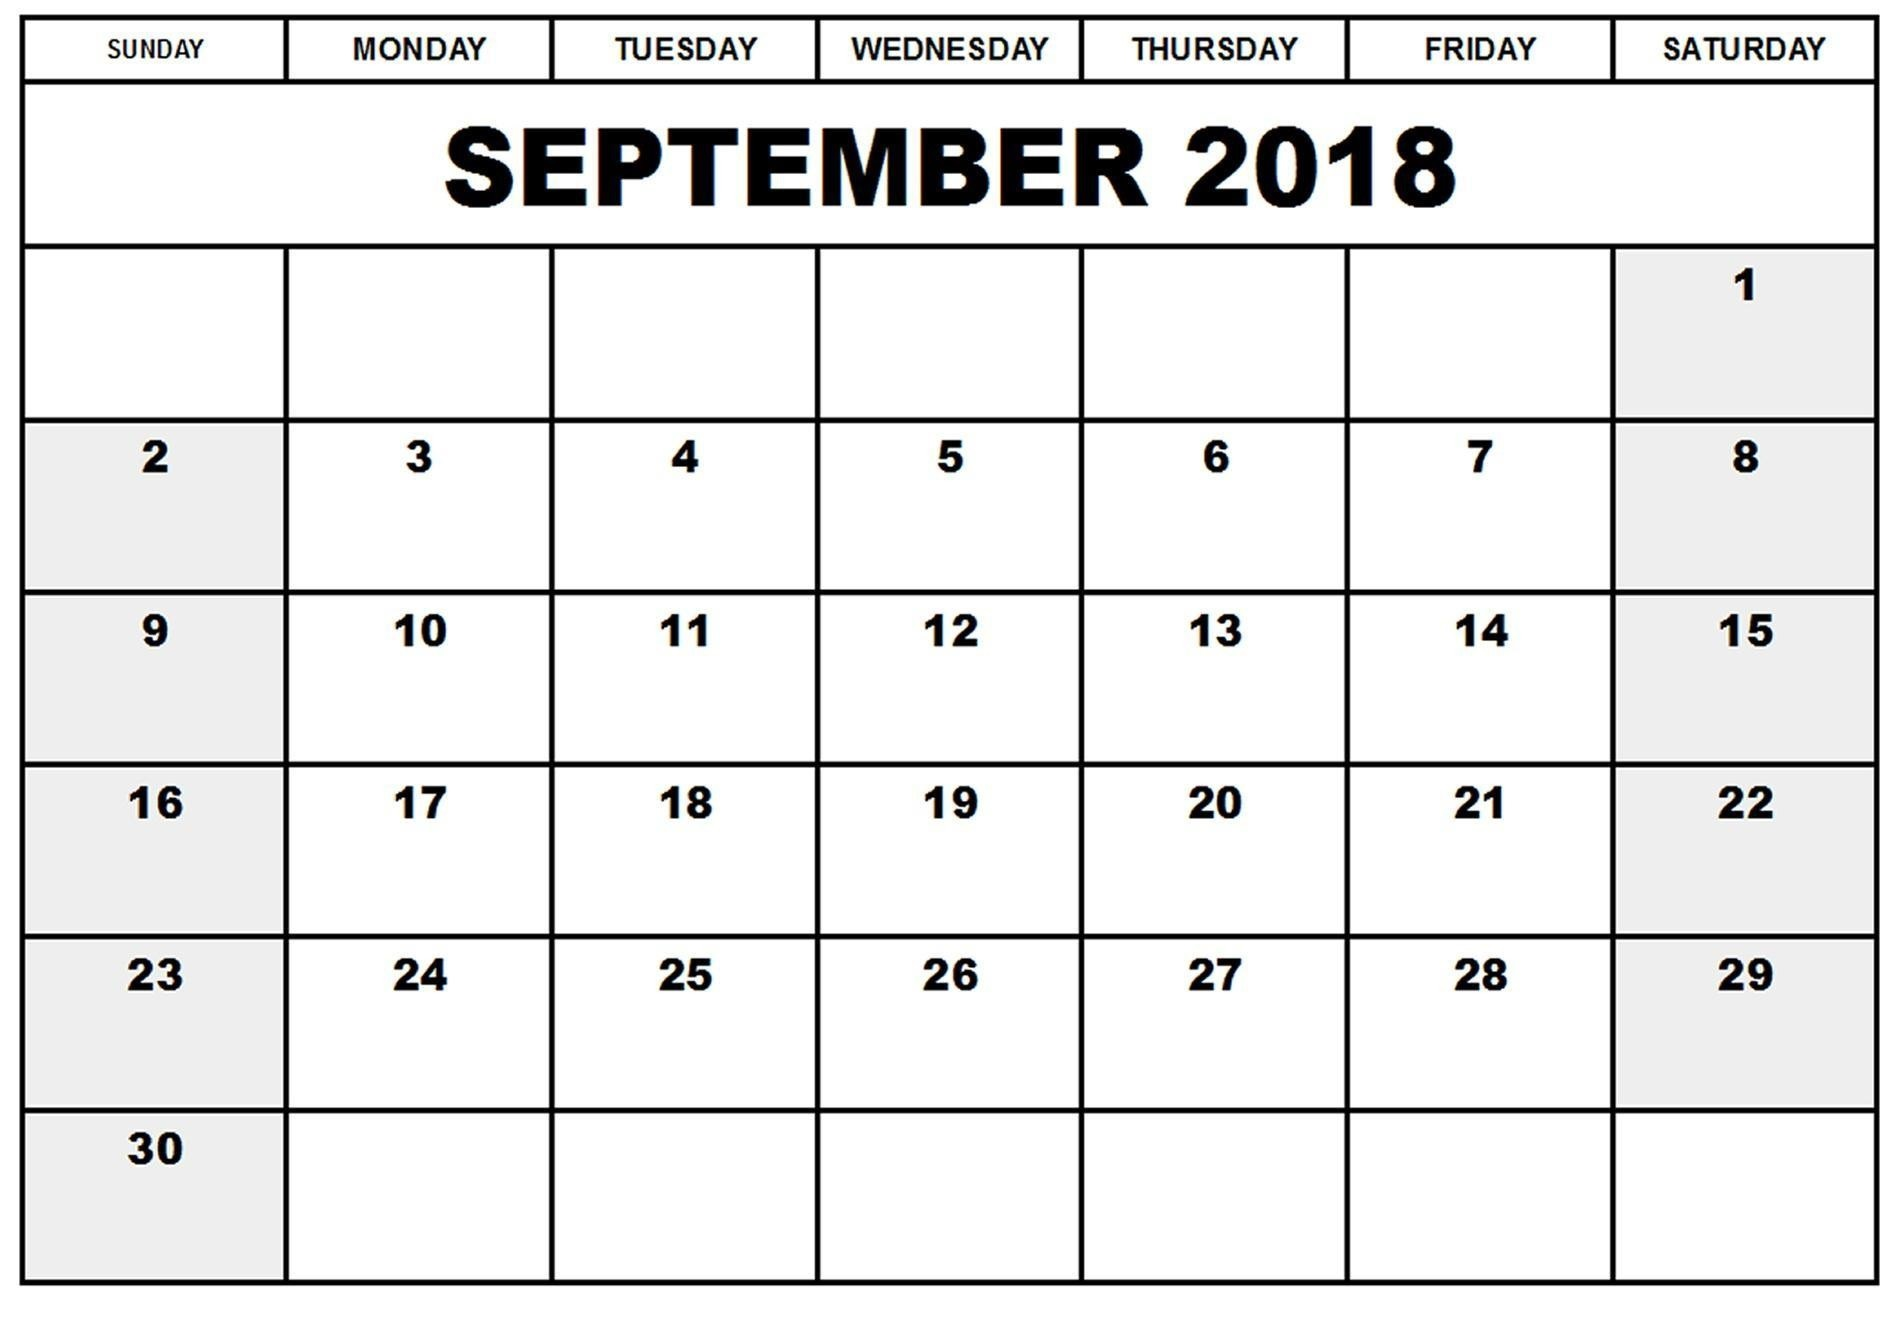 Calendar September 2018 Blank Editable Template